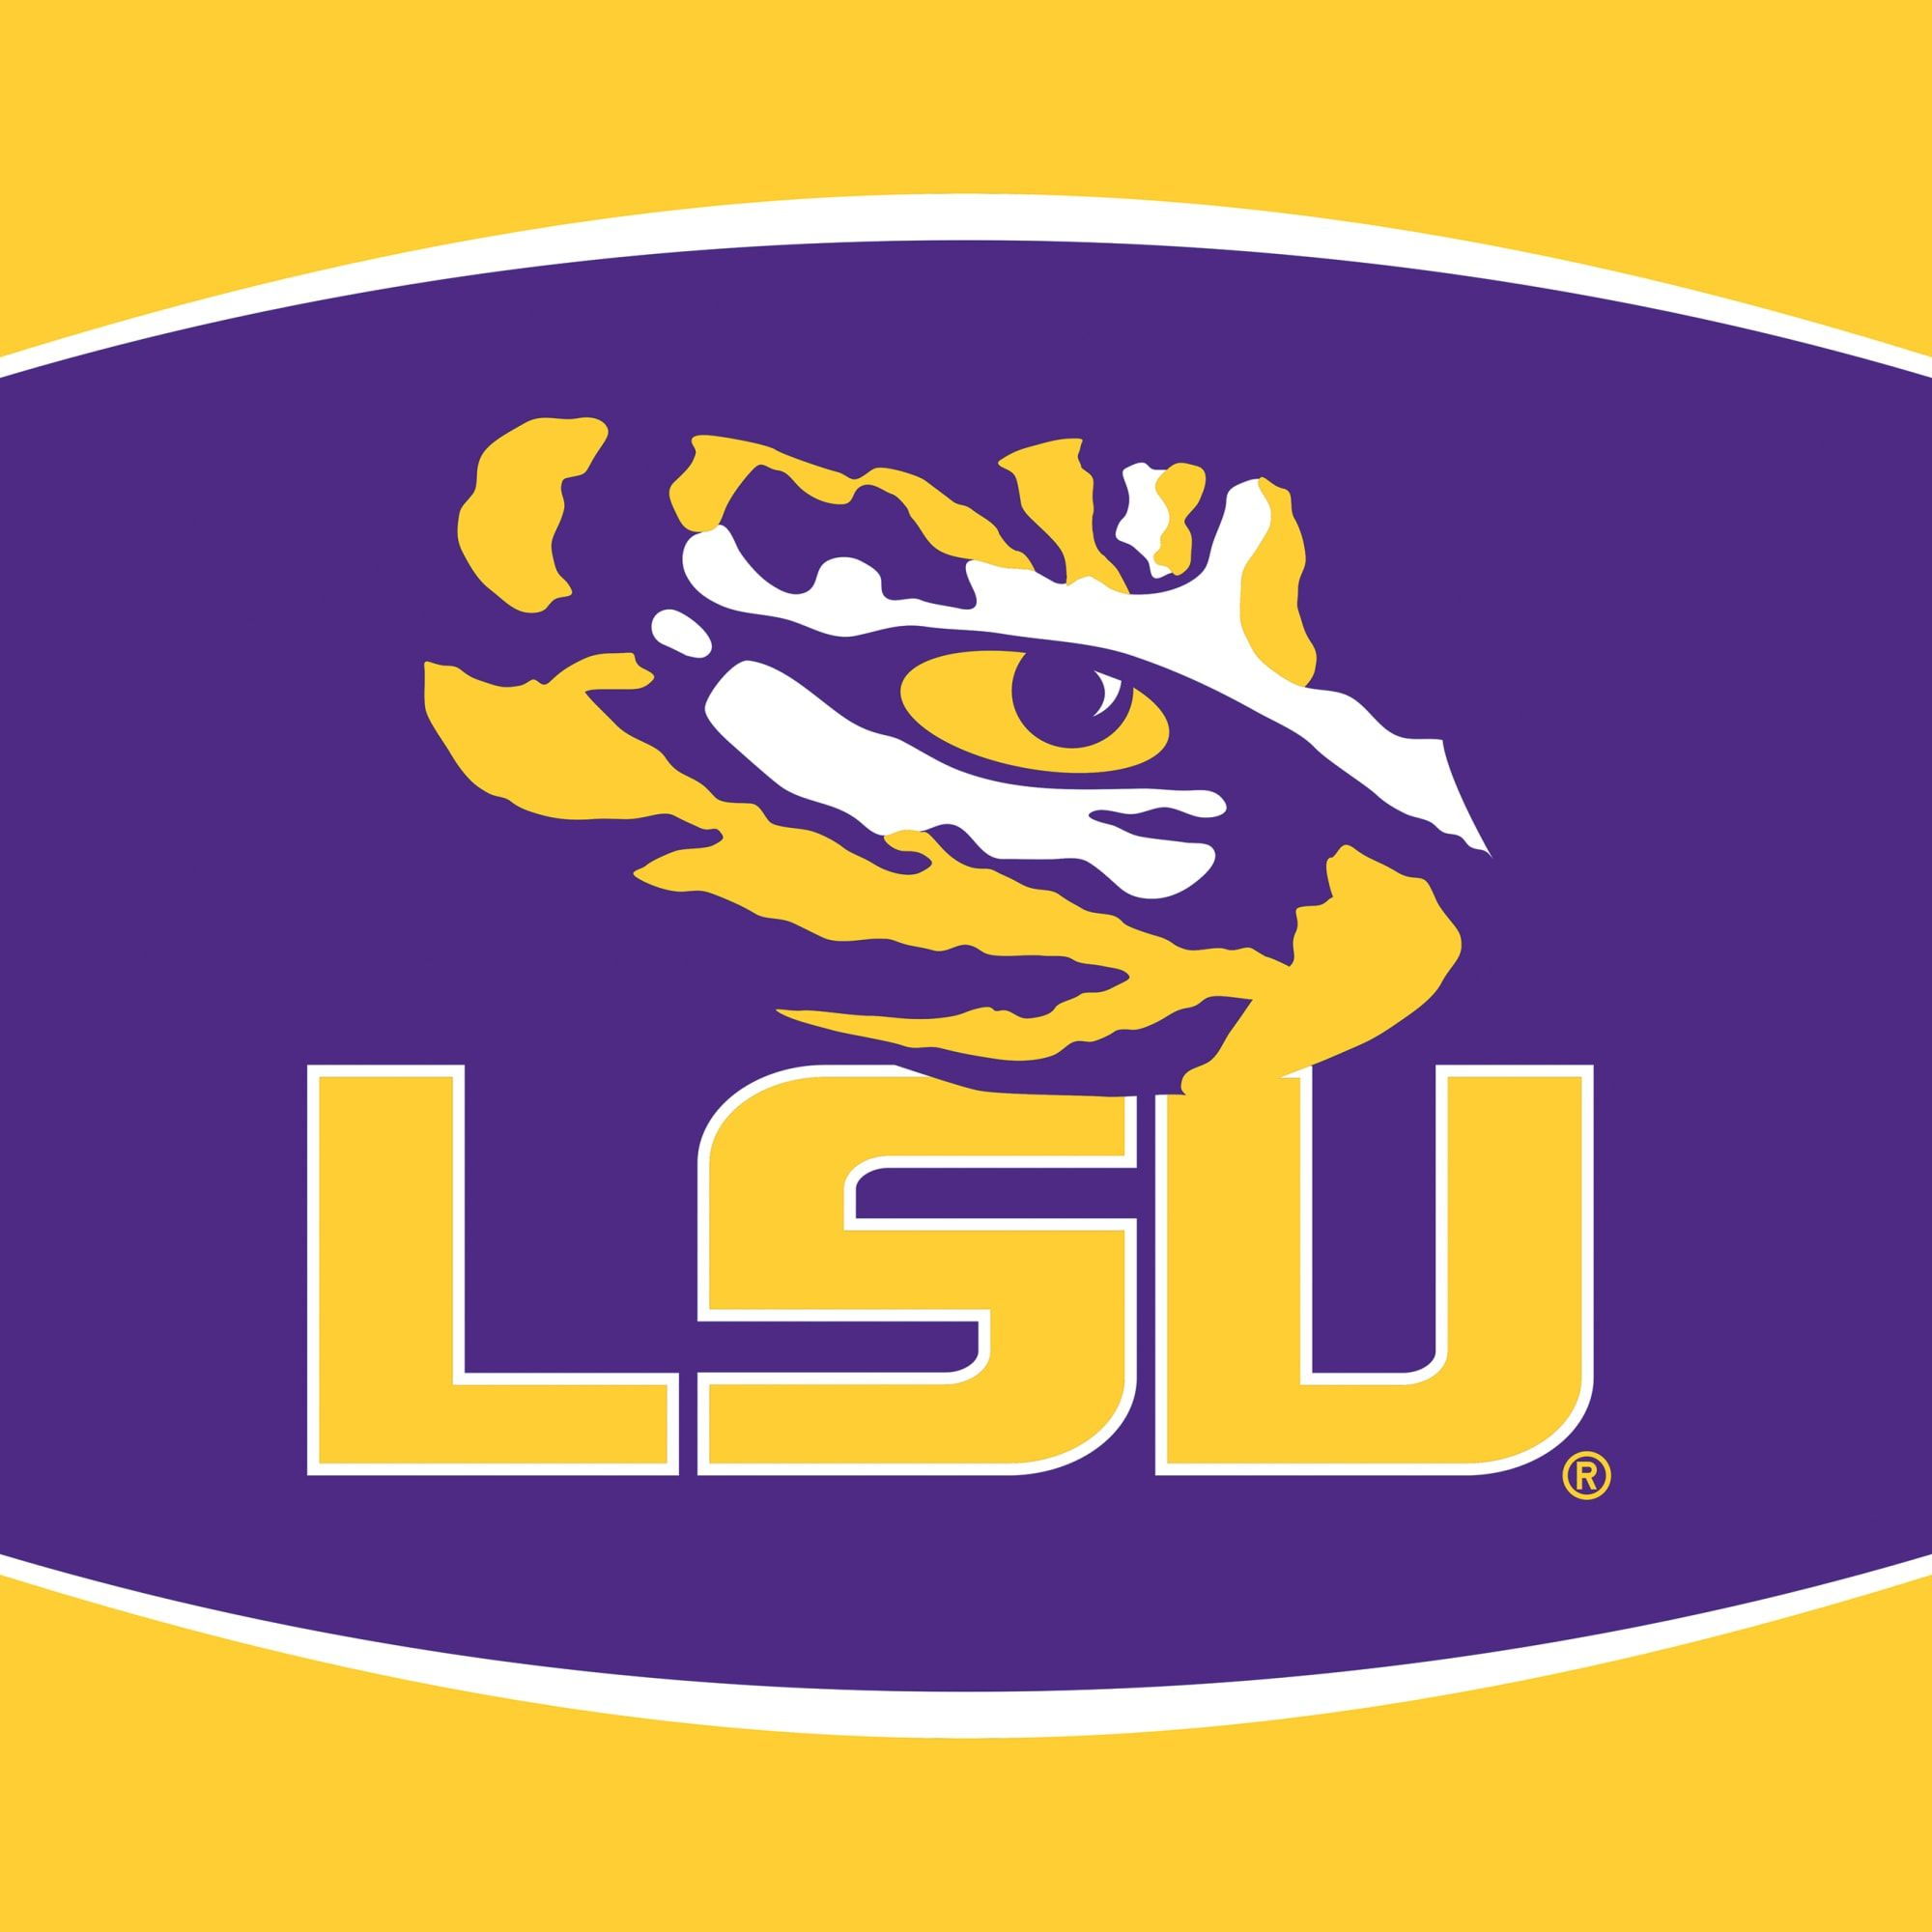 Pin By Xander Hargrove On Football In 2020 Vinyl Banners Lsu Lsu Tigers